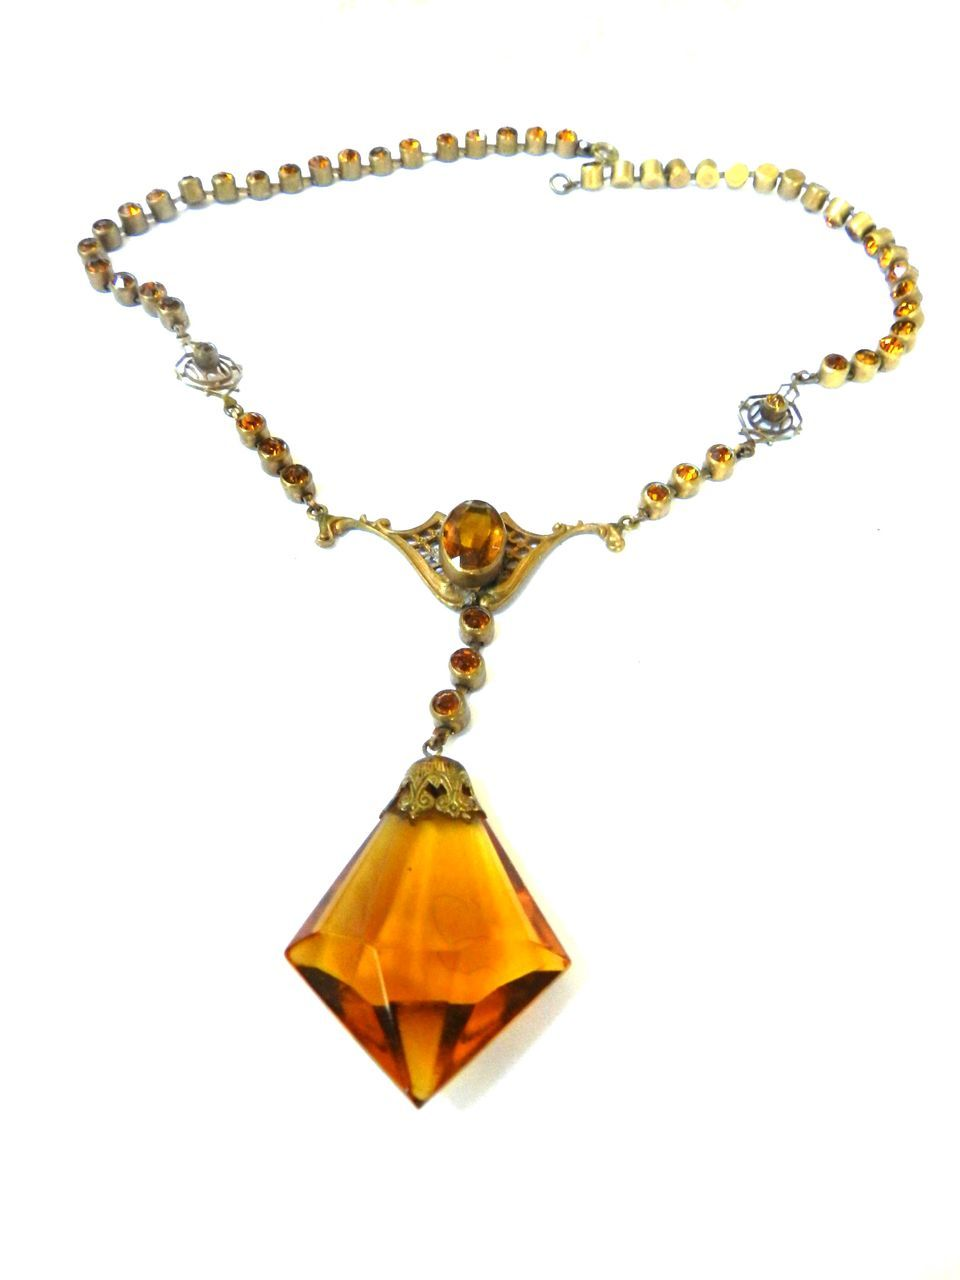 Gorgeous Early 1900s Czech Topaz Huge Stone Necklace